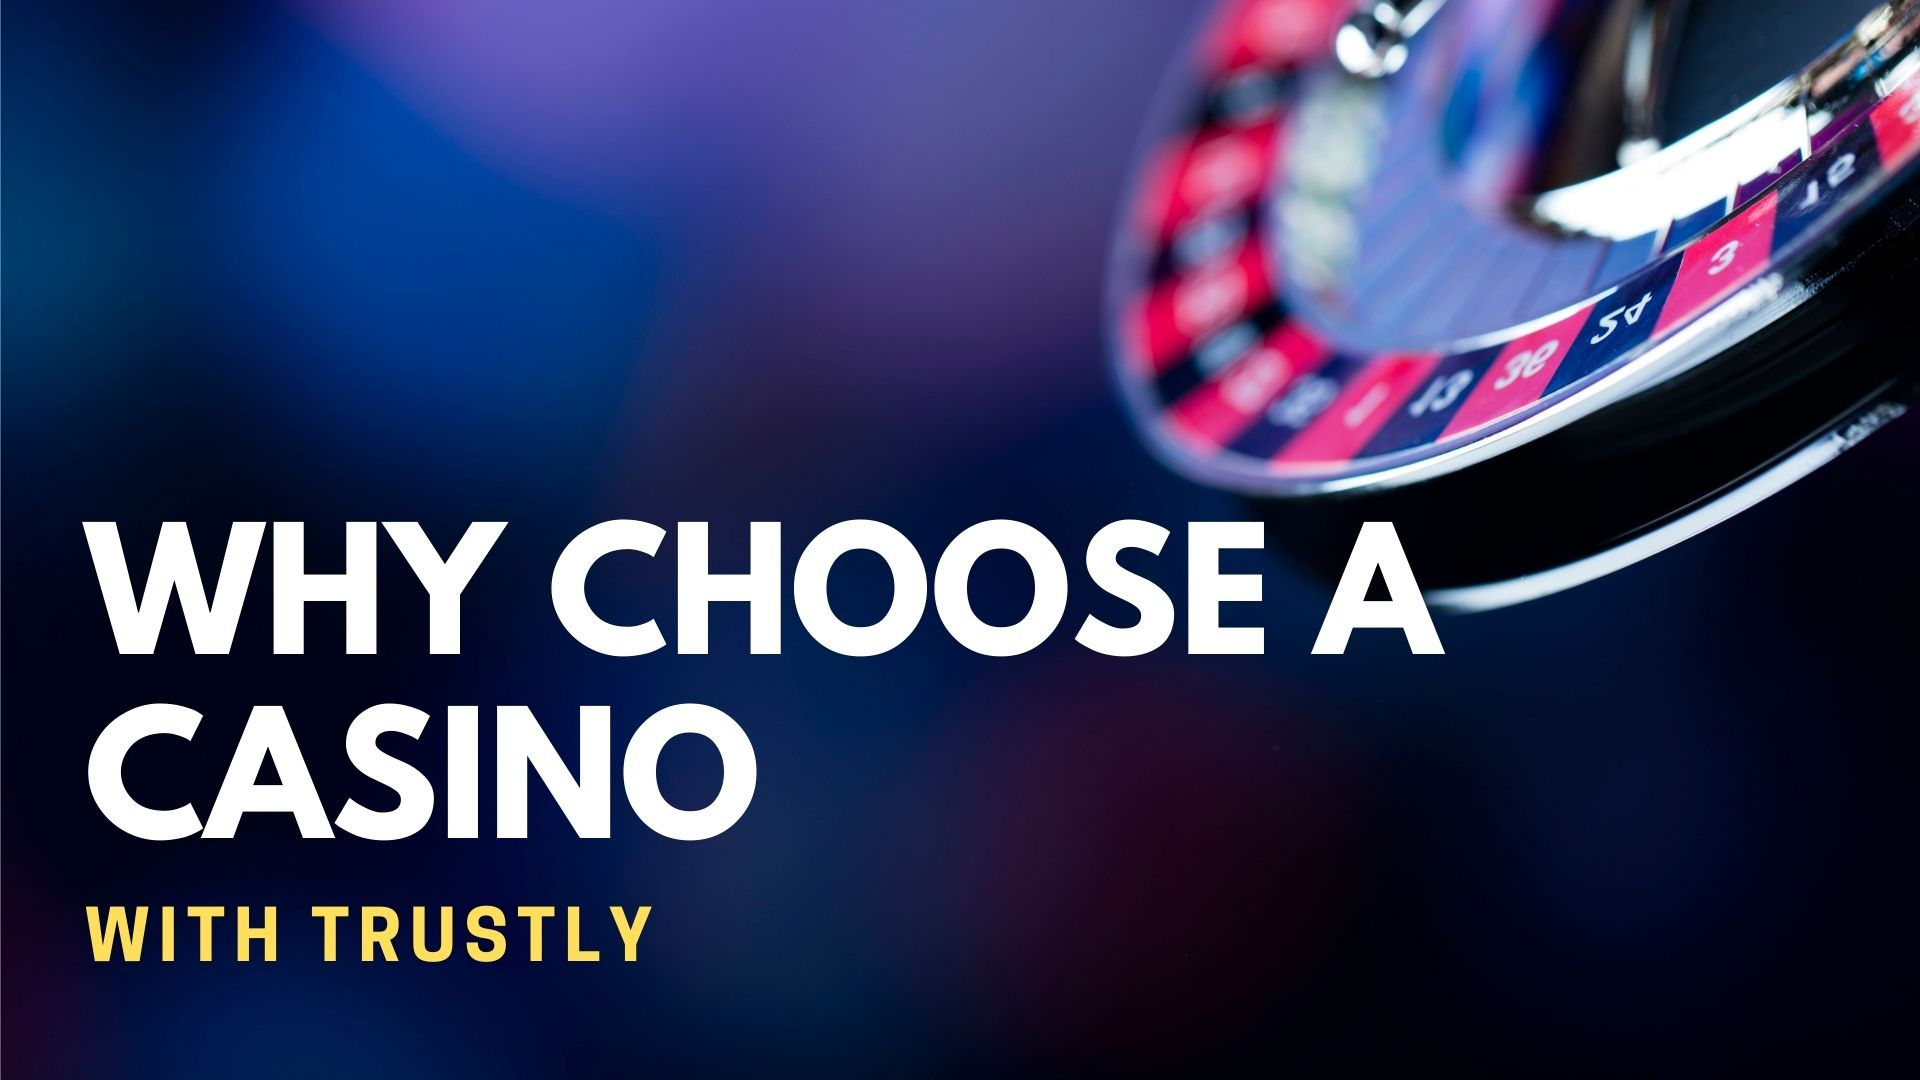 Why Choose A Casino With Trustly